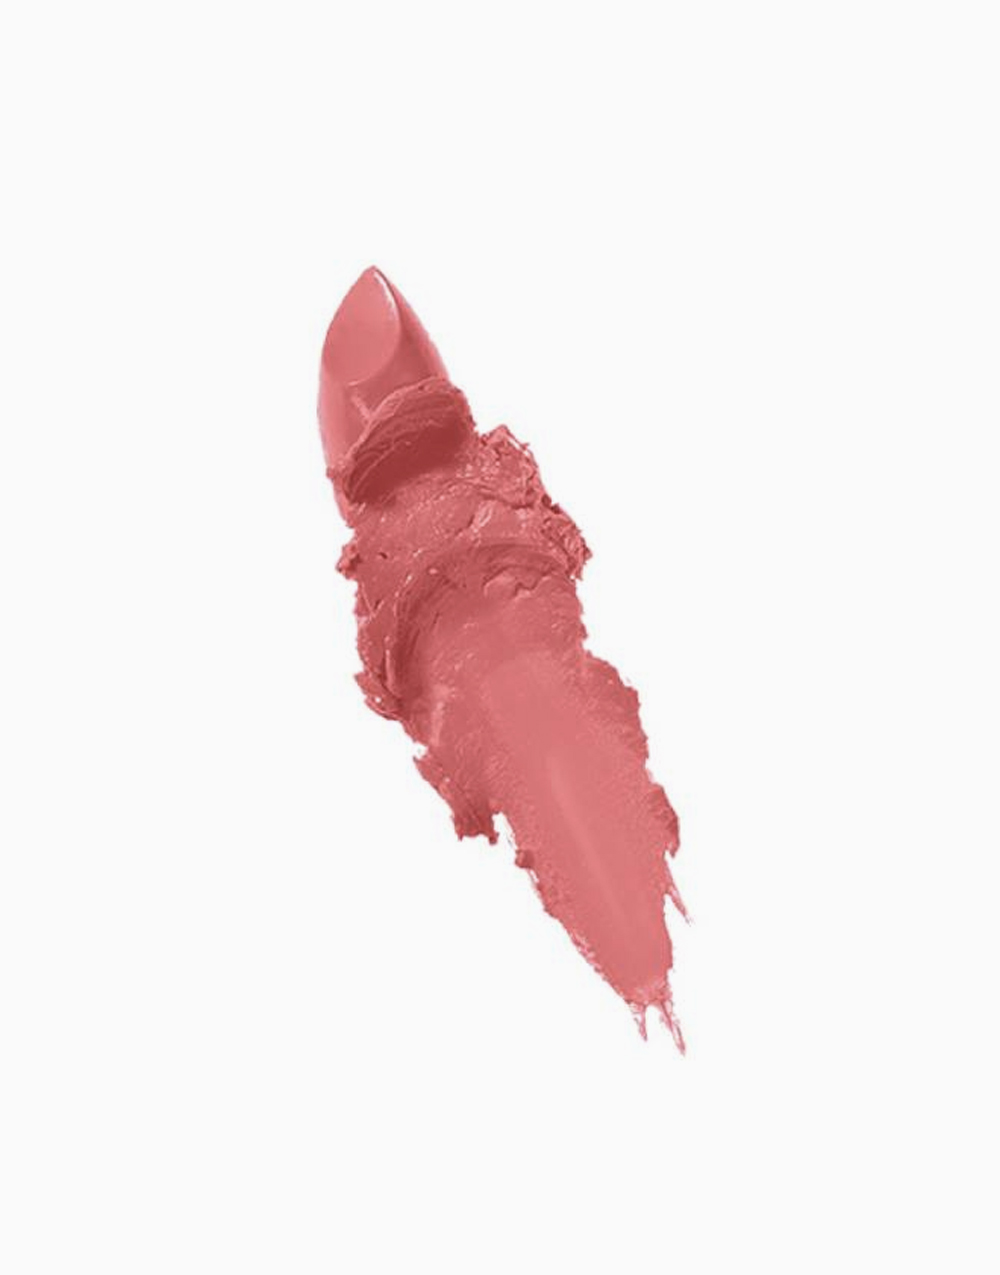 ColorSensational Vivid Creamy Matte Lipstick by Maybelline | Rock The Coral